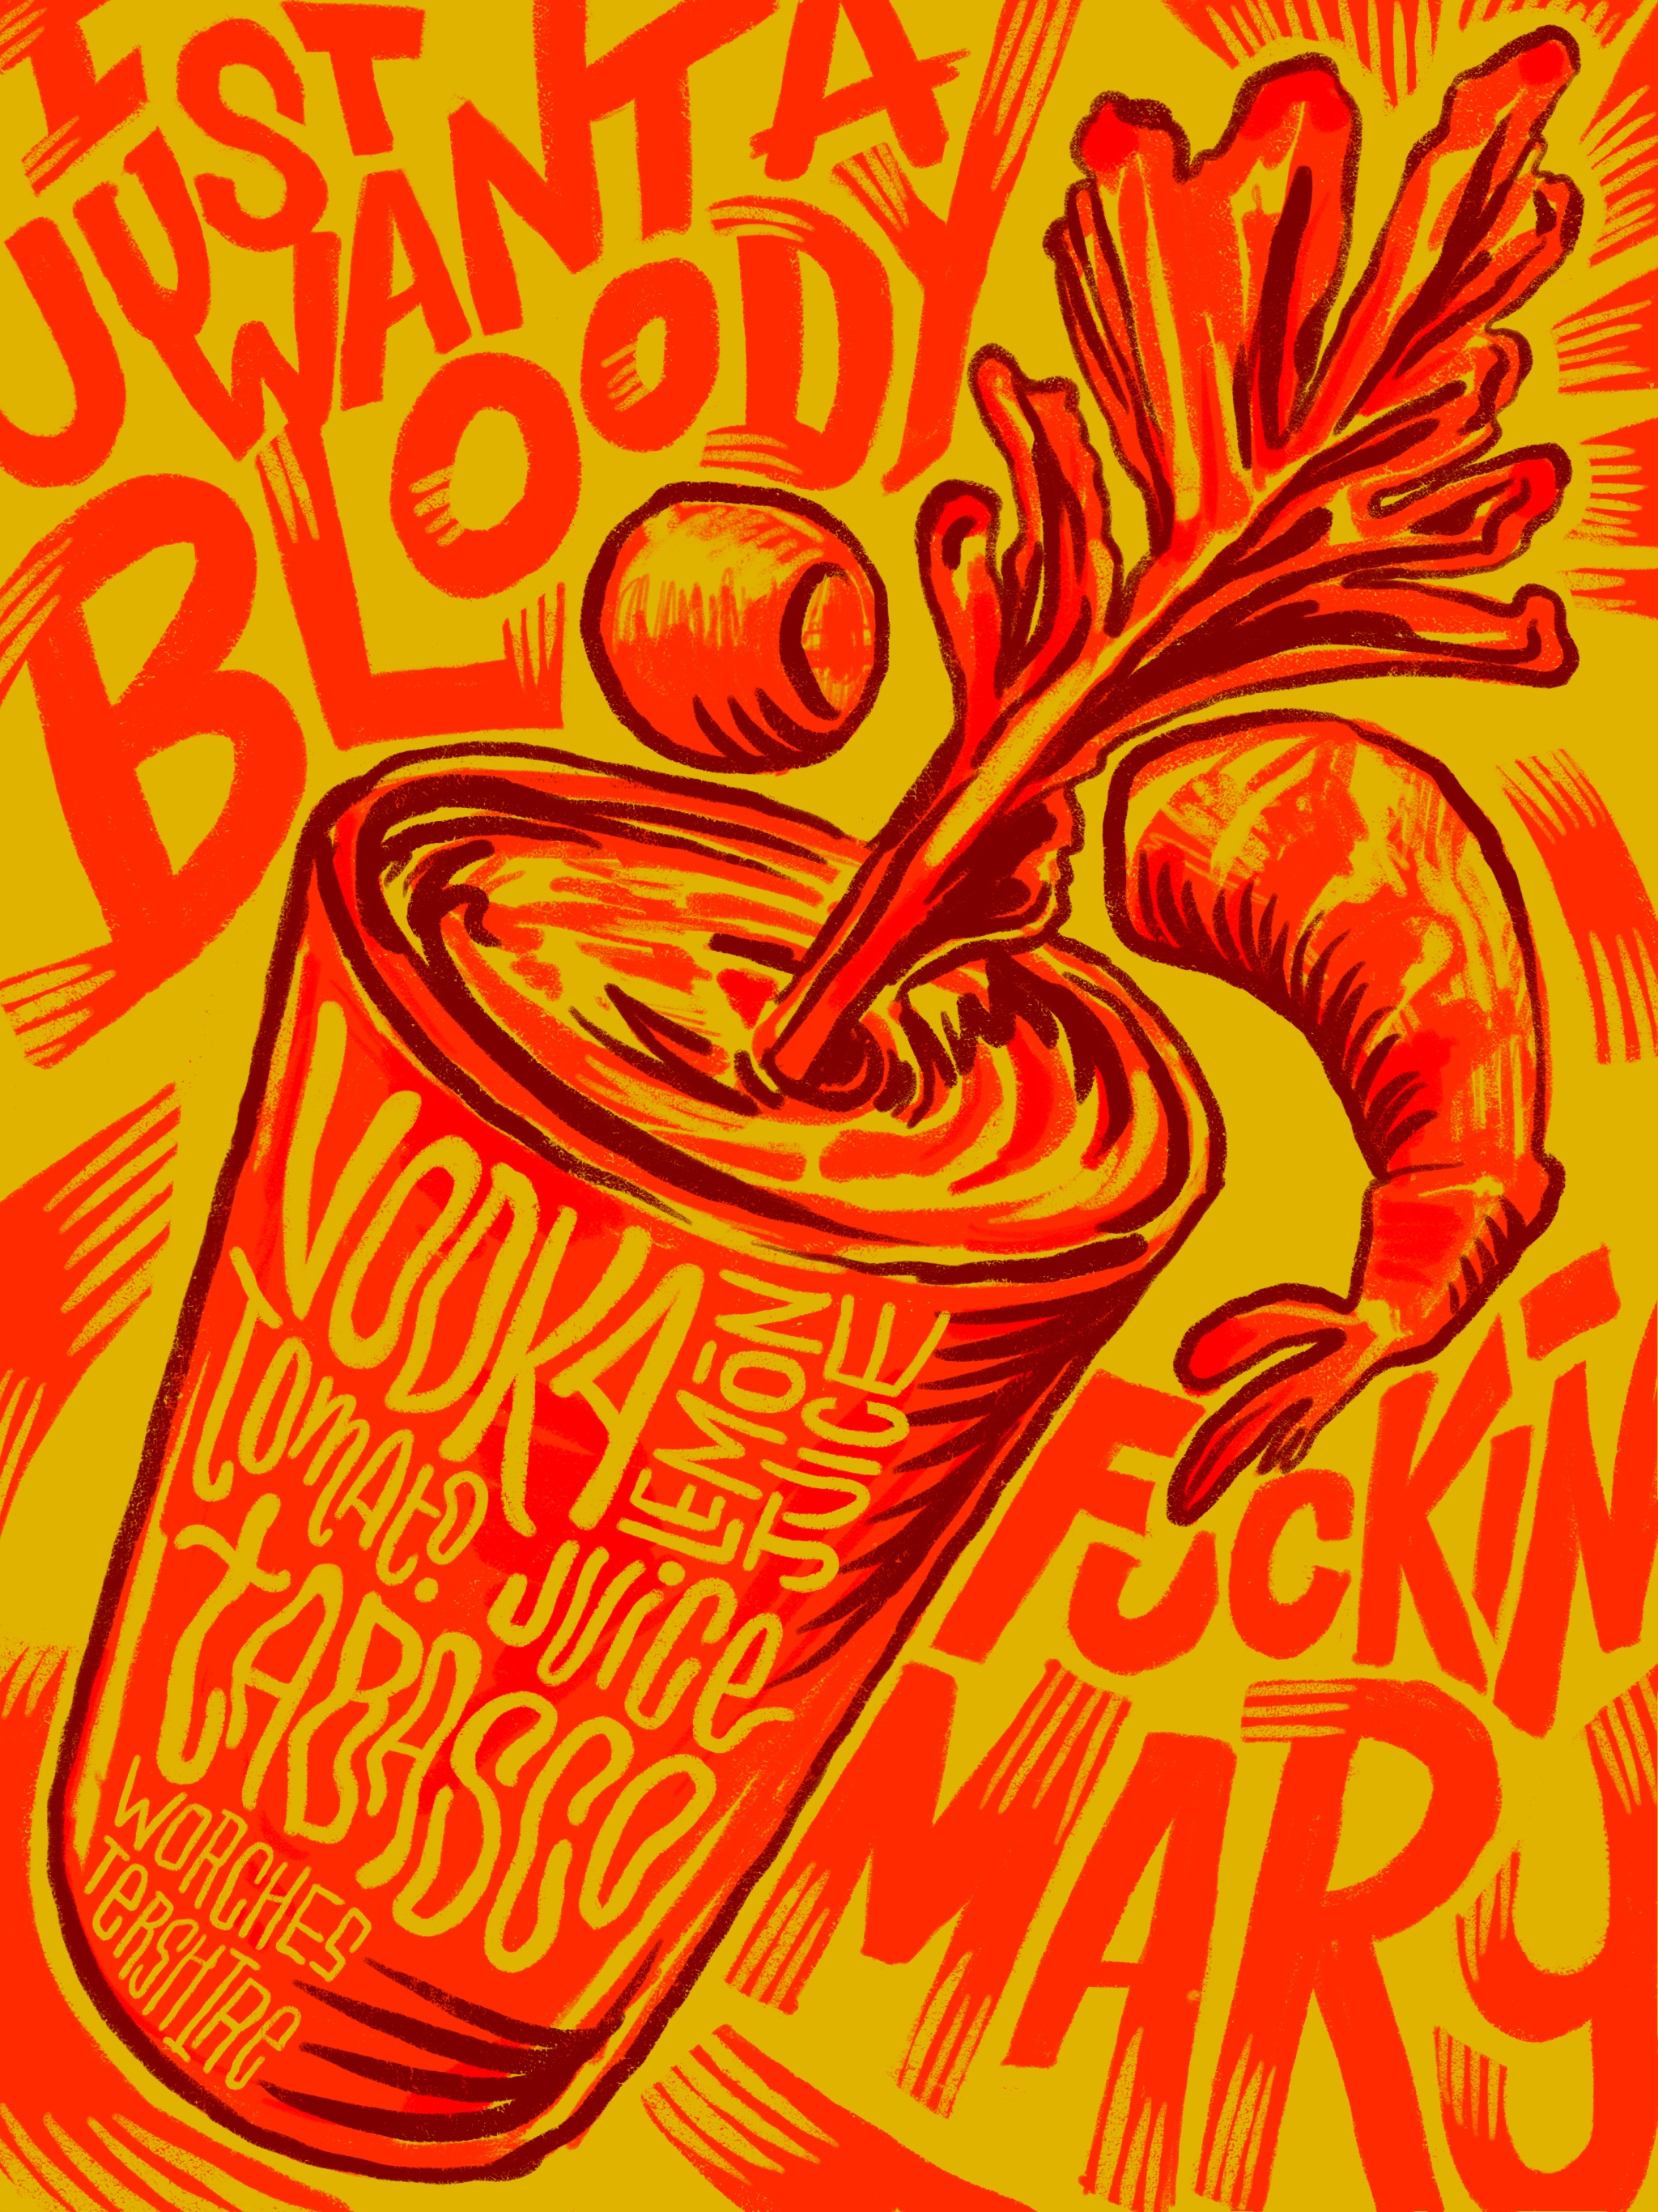 Lettered Libations: Bloody Mary